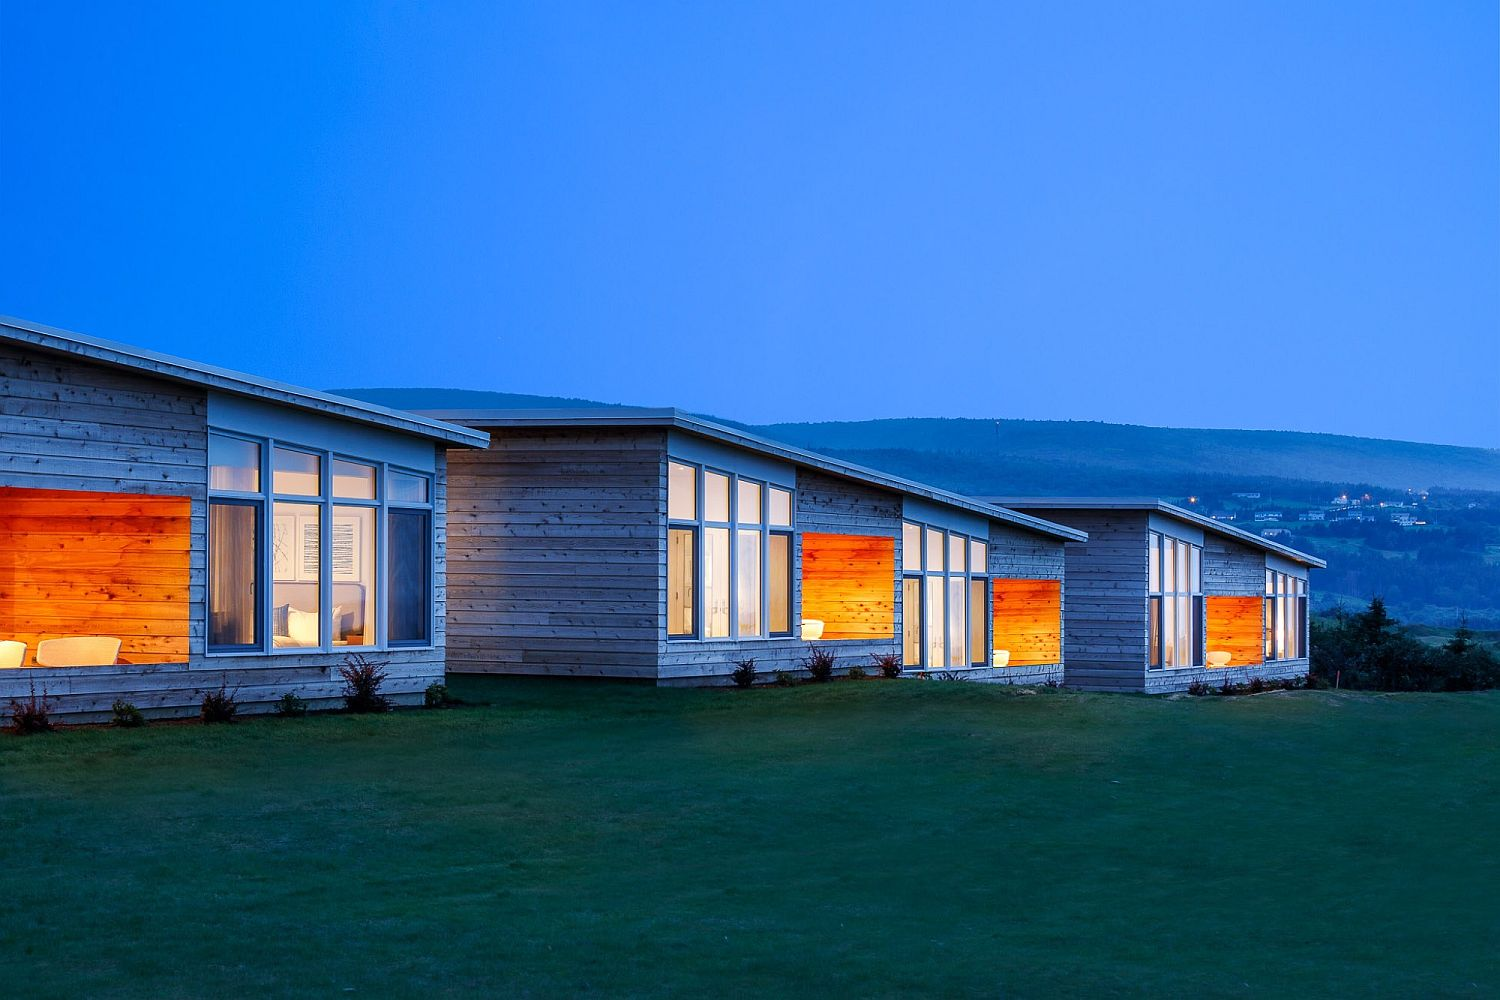 Lighting adds to the unique aura of the cabins at Cabot Links